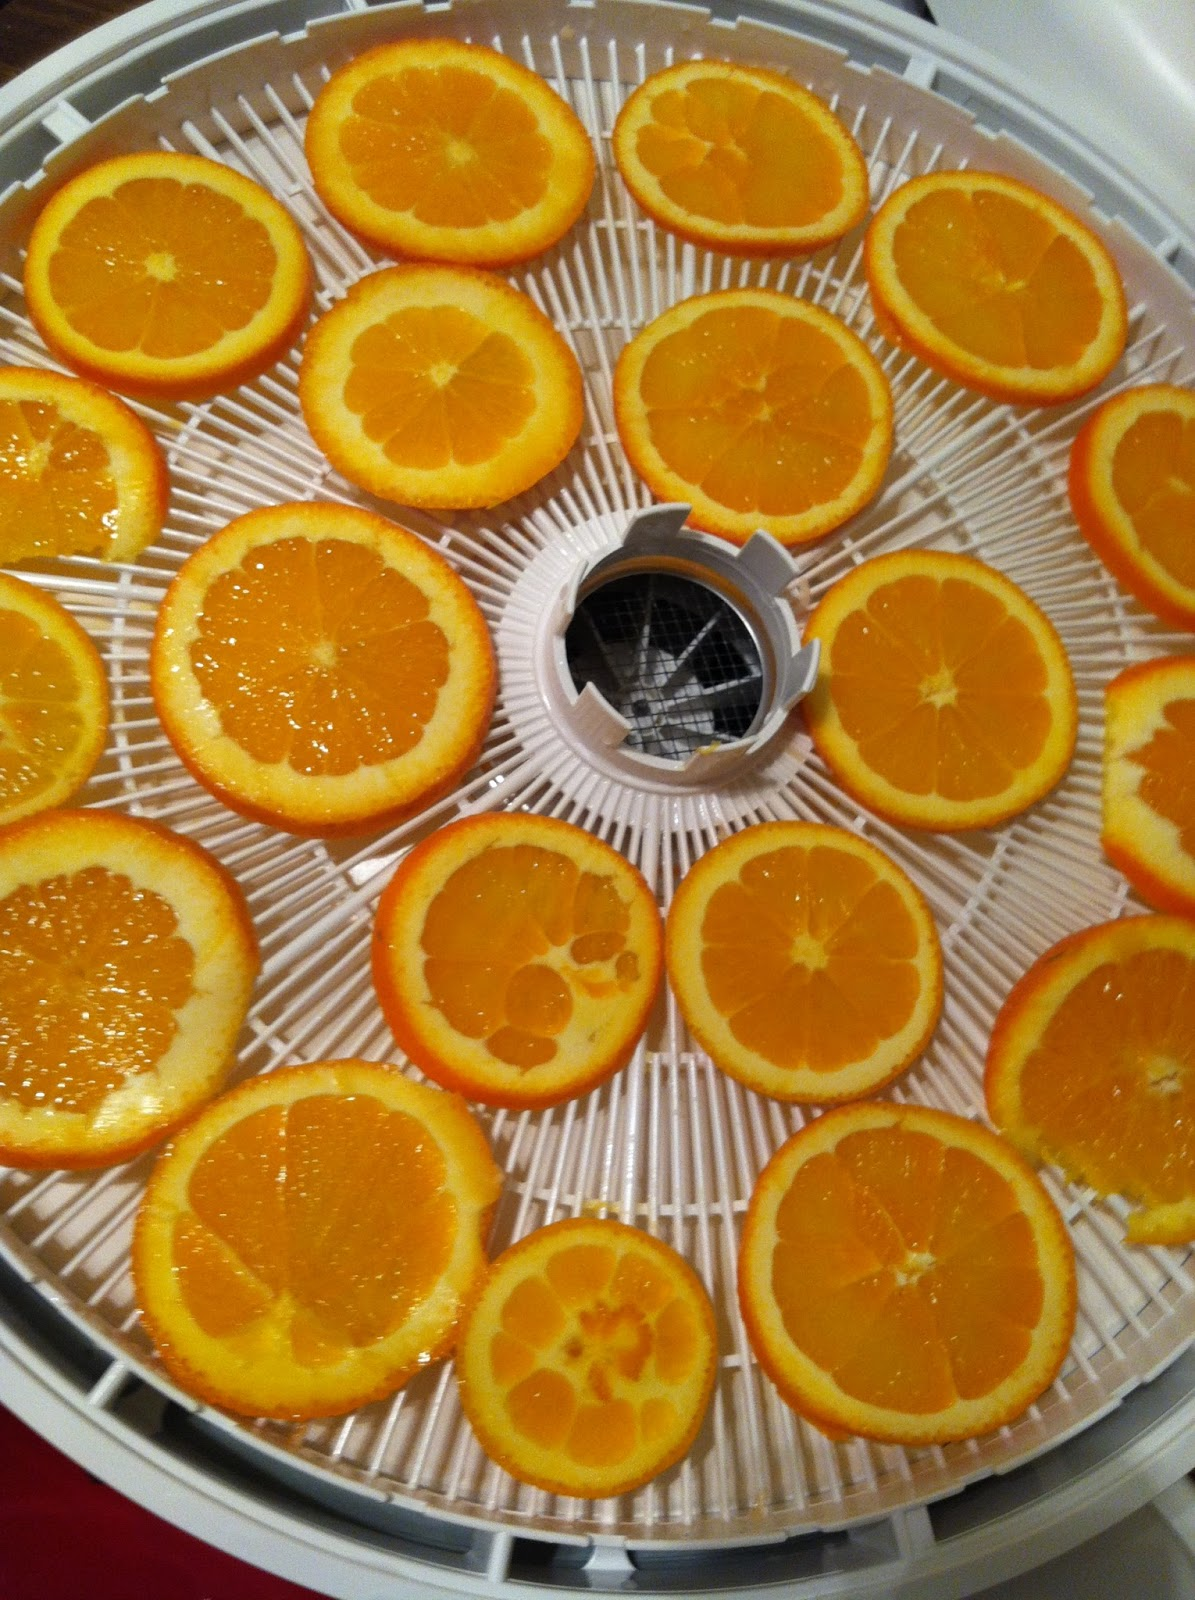 How to dehydrate oranges?